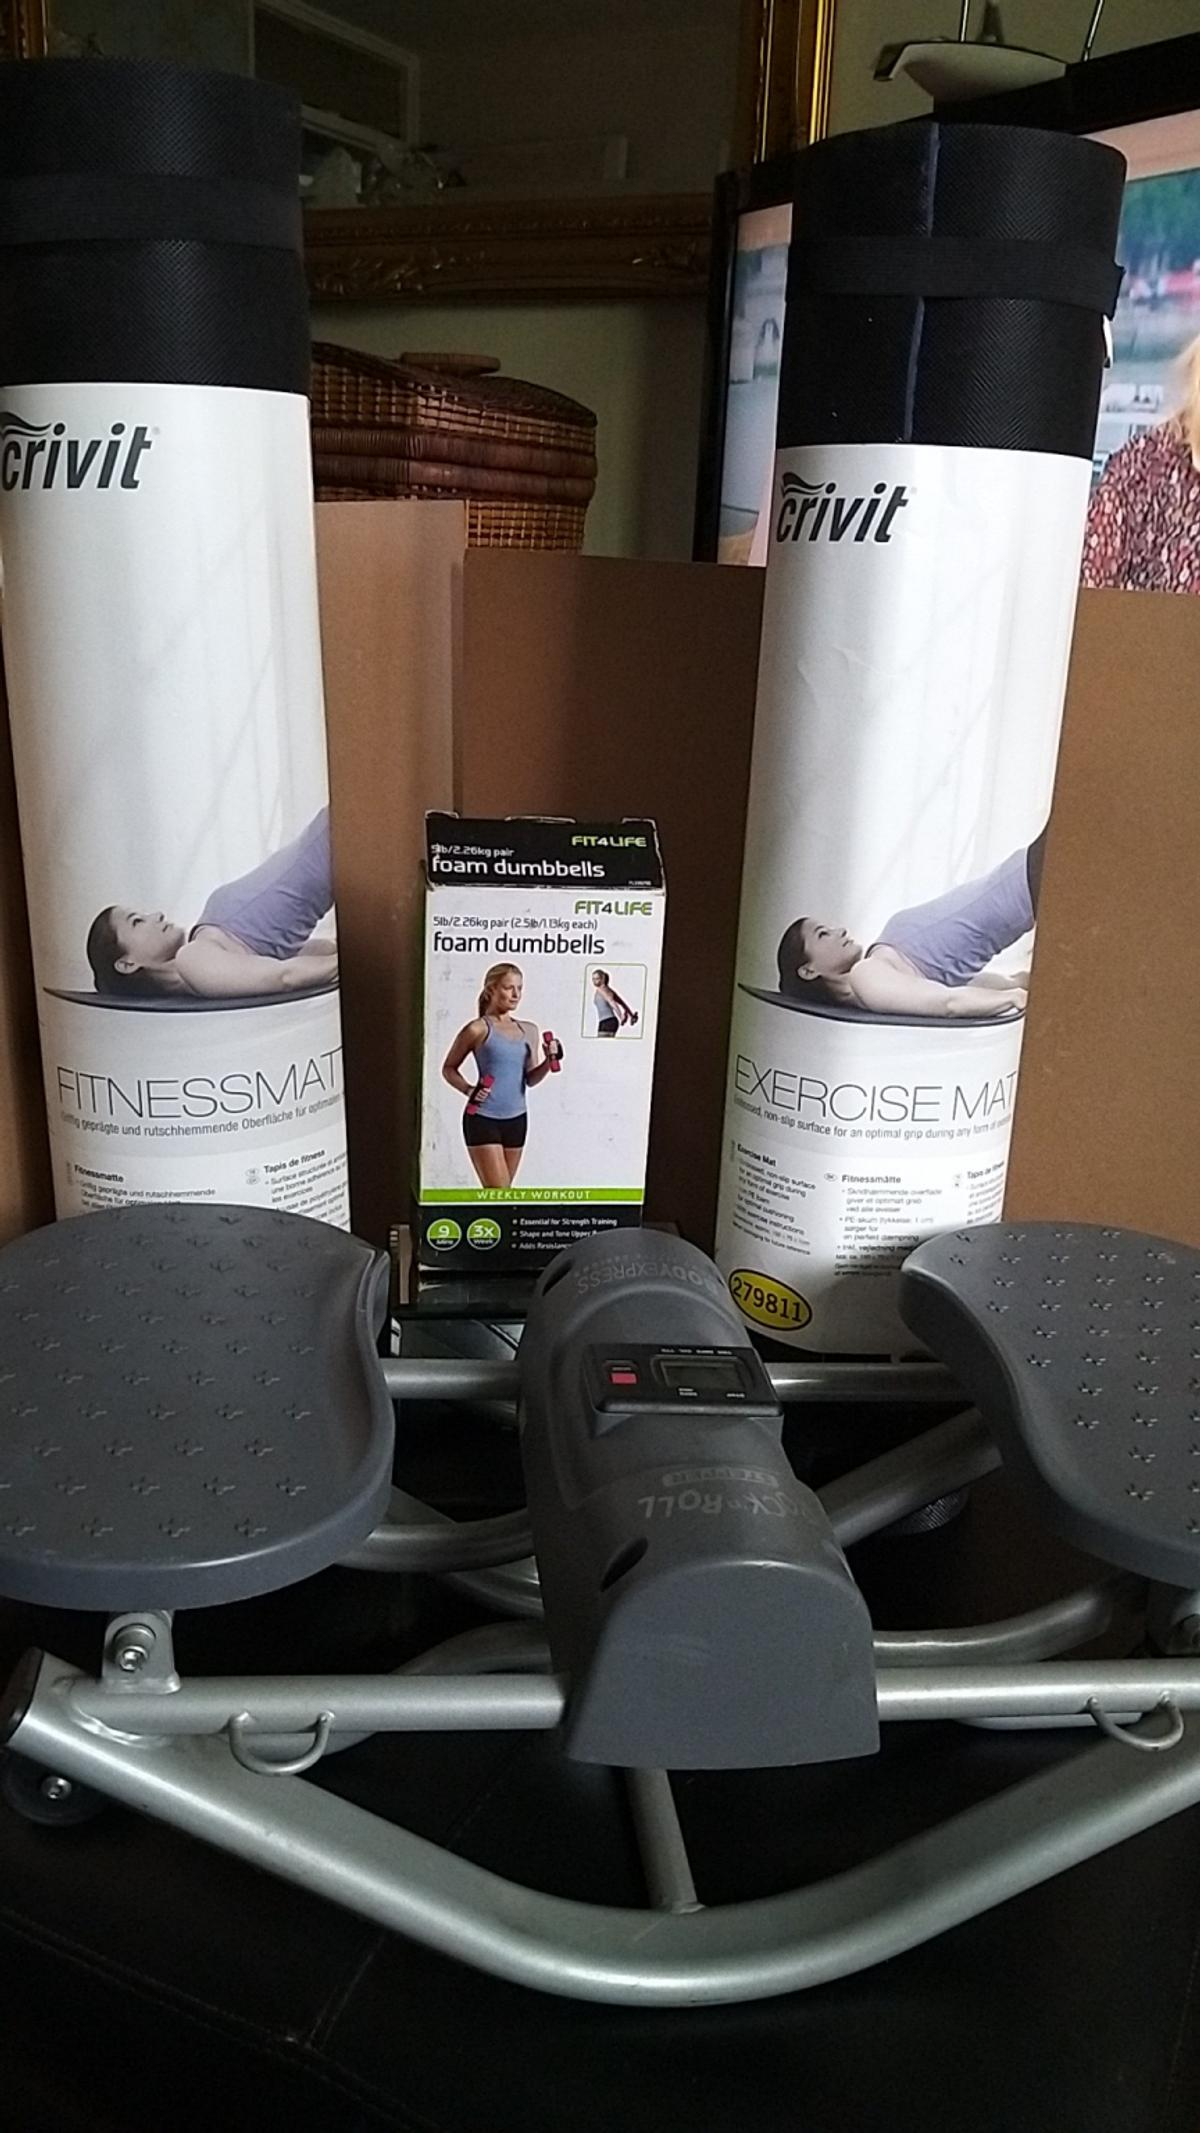 a selection of fitness equipment together with a reduction of daily carbohydrates you will achieved your goals good luck 😀 exercise mat £5.00 dumb bells £8.00